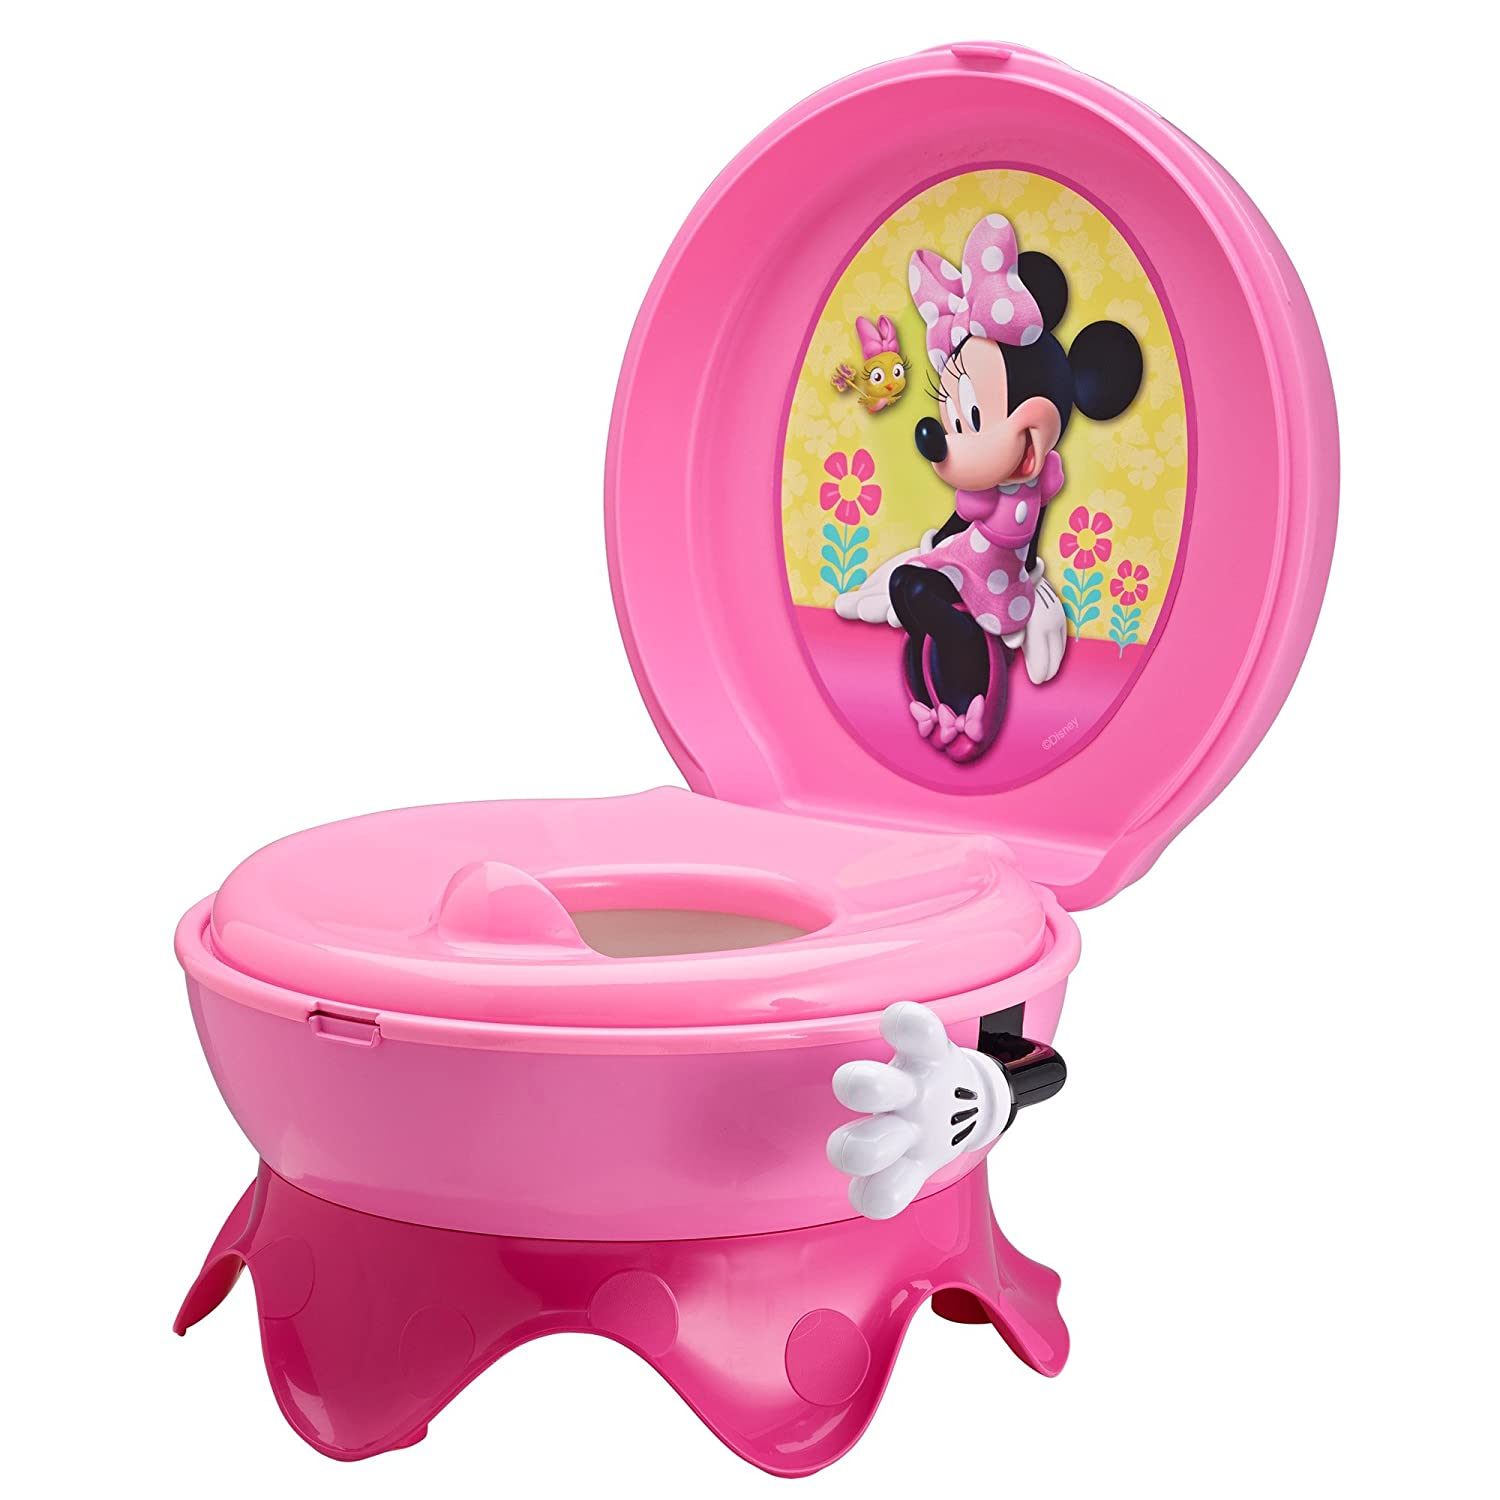 The First Years Disney Baby Minnie Mouse 3-In-1 Celebration Potty System Y9908